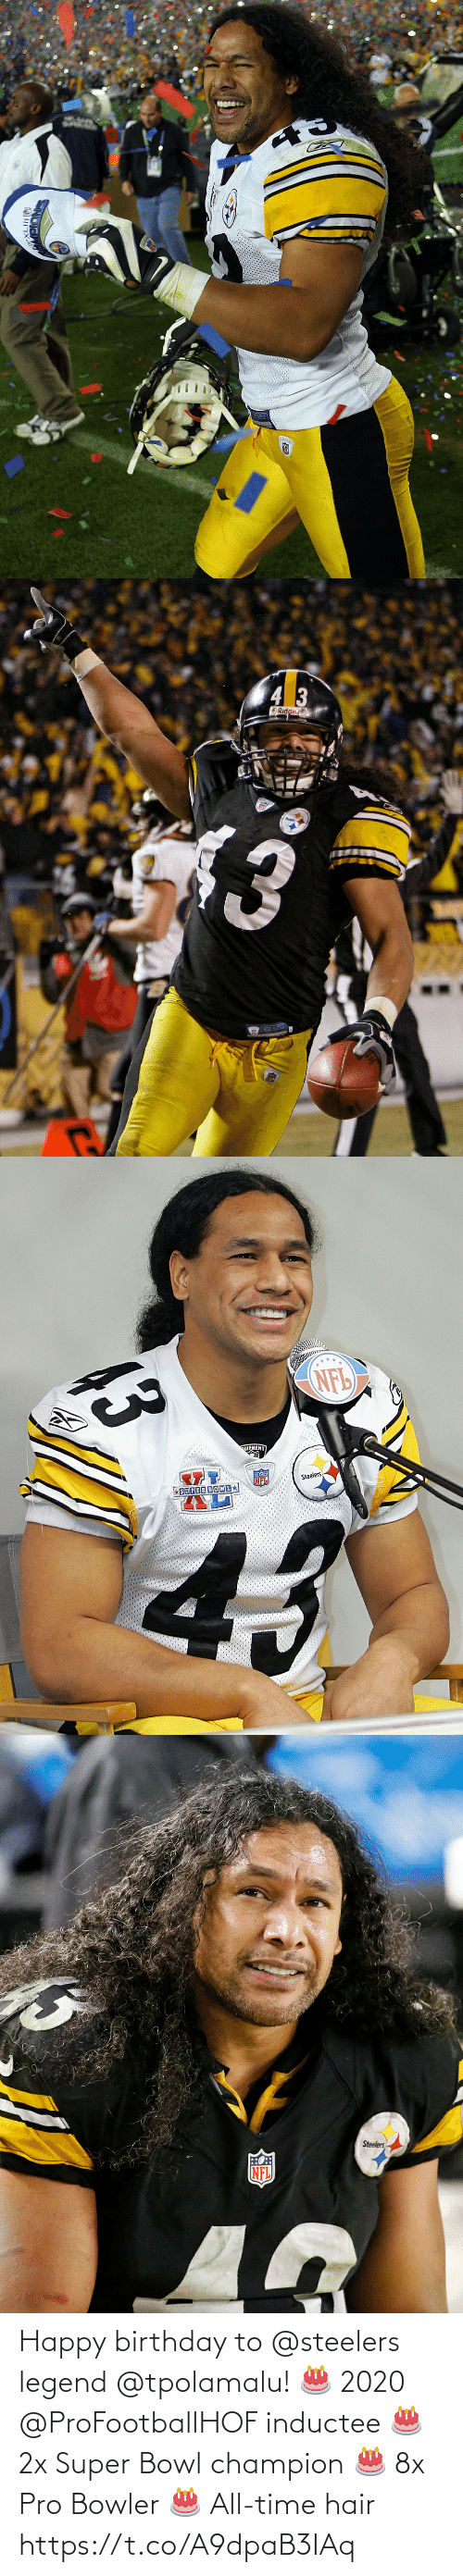 Happy Birthday: Happy birthday to @steelers legend @tpolamalu! 🎂 2020 @ProFootballHOF inductee 🎂 2x Super Bowl champion 🎂 8x Pro Bowler 🎂 All-time hair https://t.co/A9dpaB3IAq